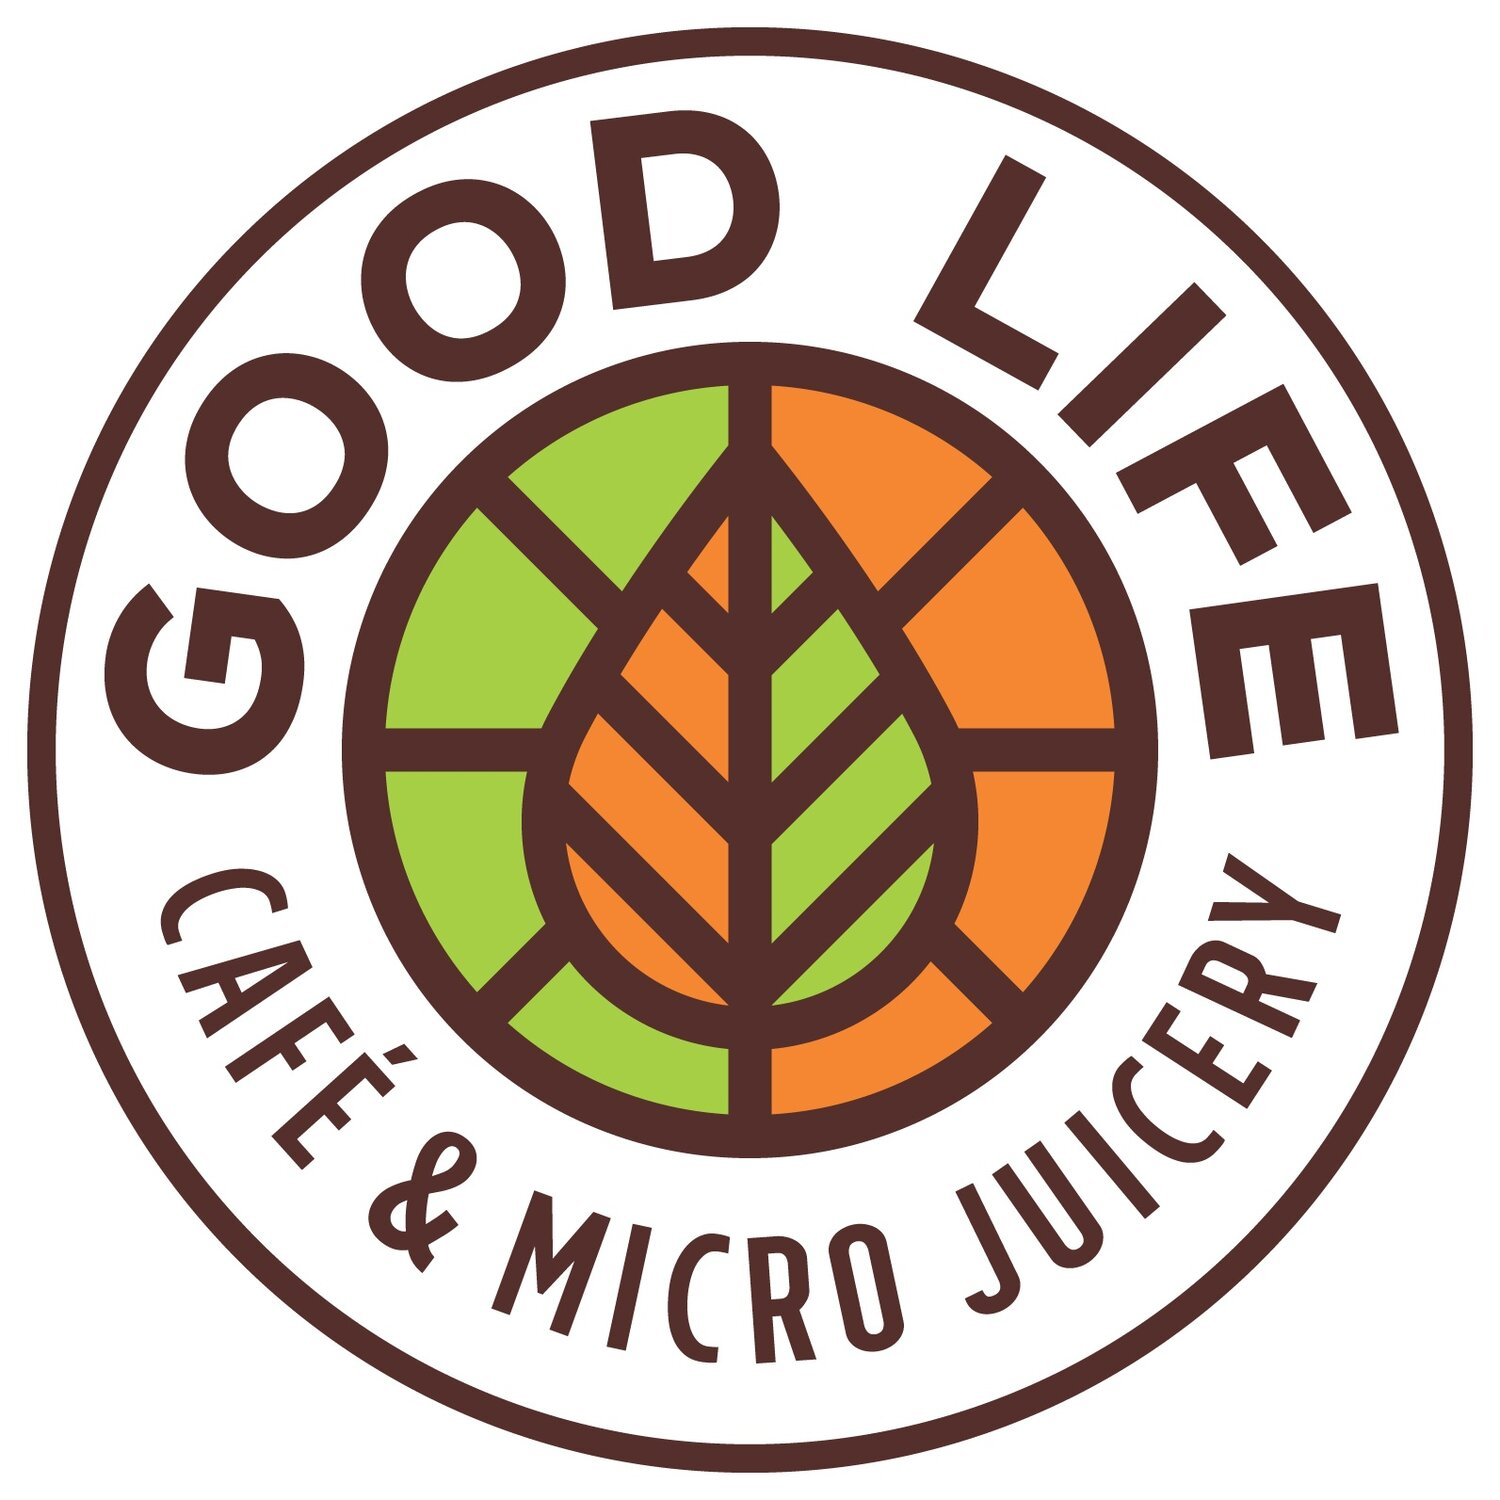 good life cafe & micro juicery